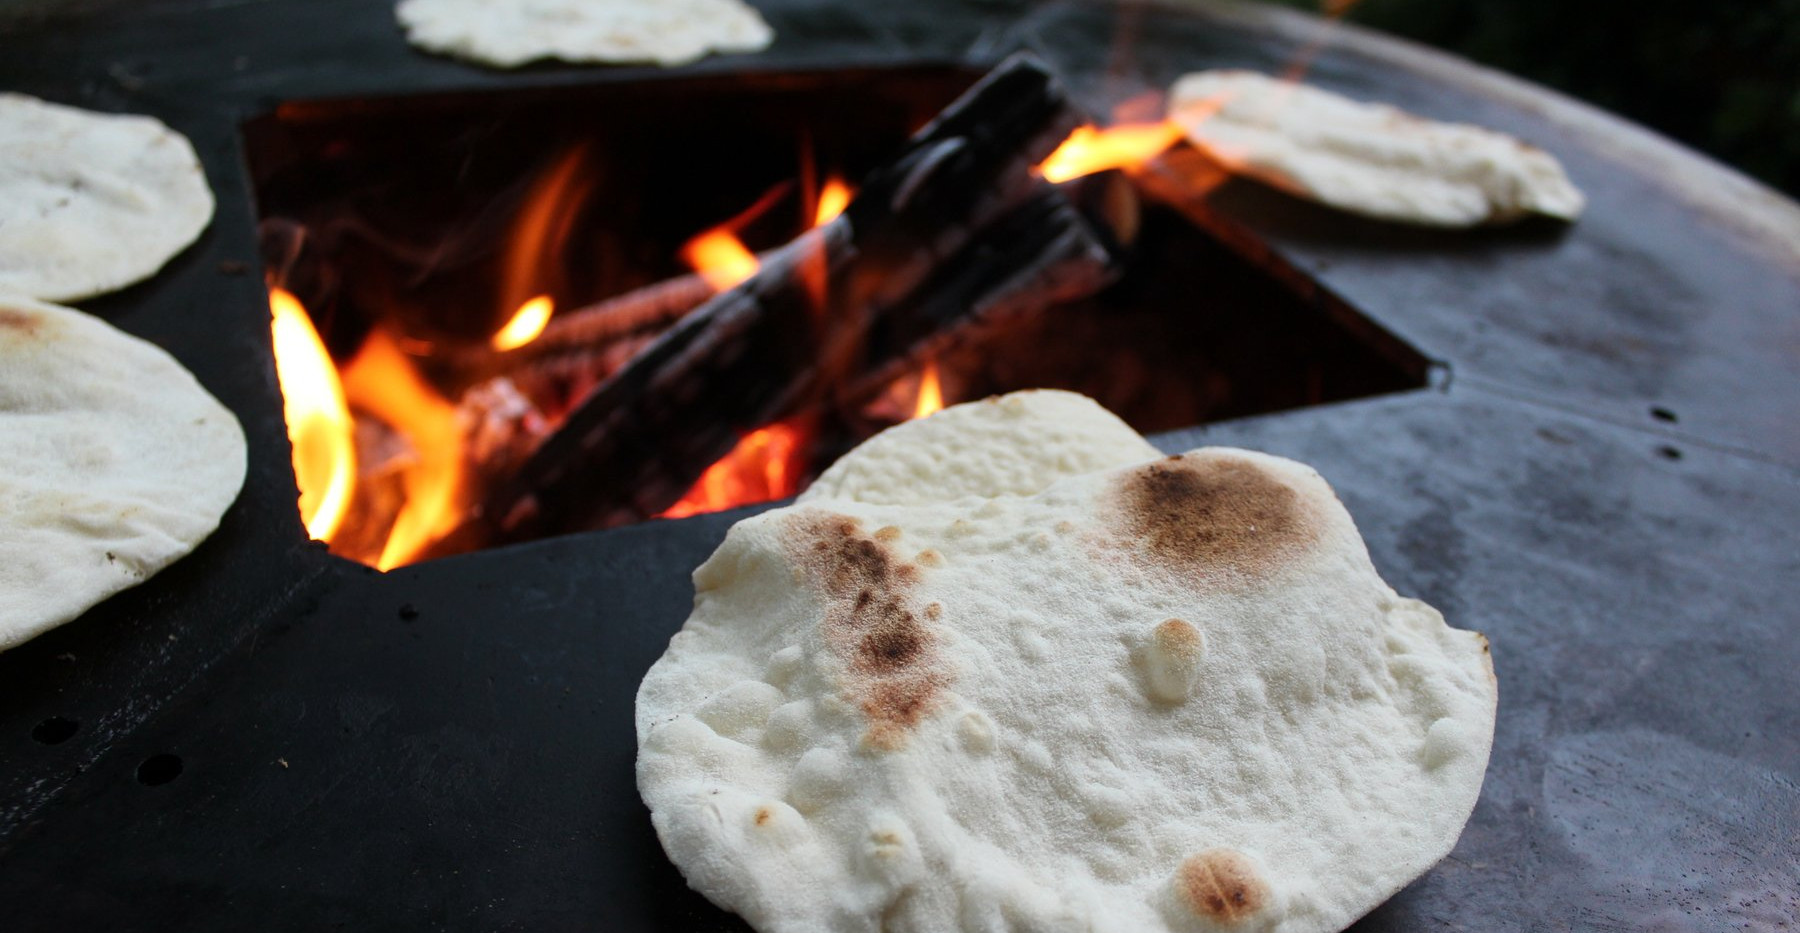 Naan bread on the Ringgrill